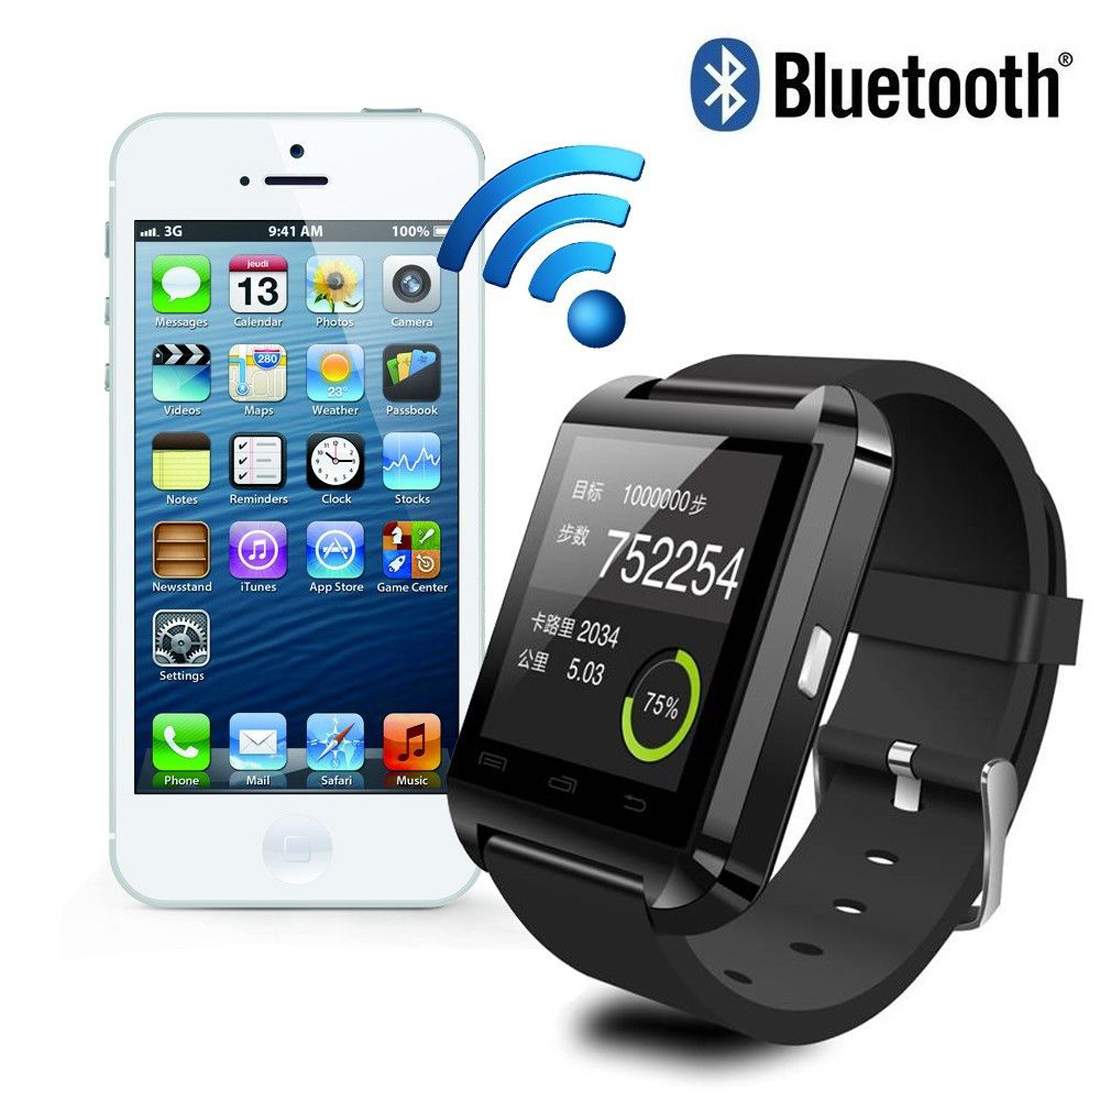 Meboyixi Bluetooth smart watch Wrist Watch smartWatch for For iPhone 4/4S/5/5S/6 for Samsung S4/Note/s6 HTC Android Smartwatch